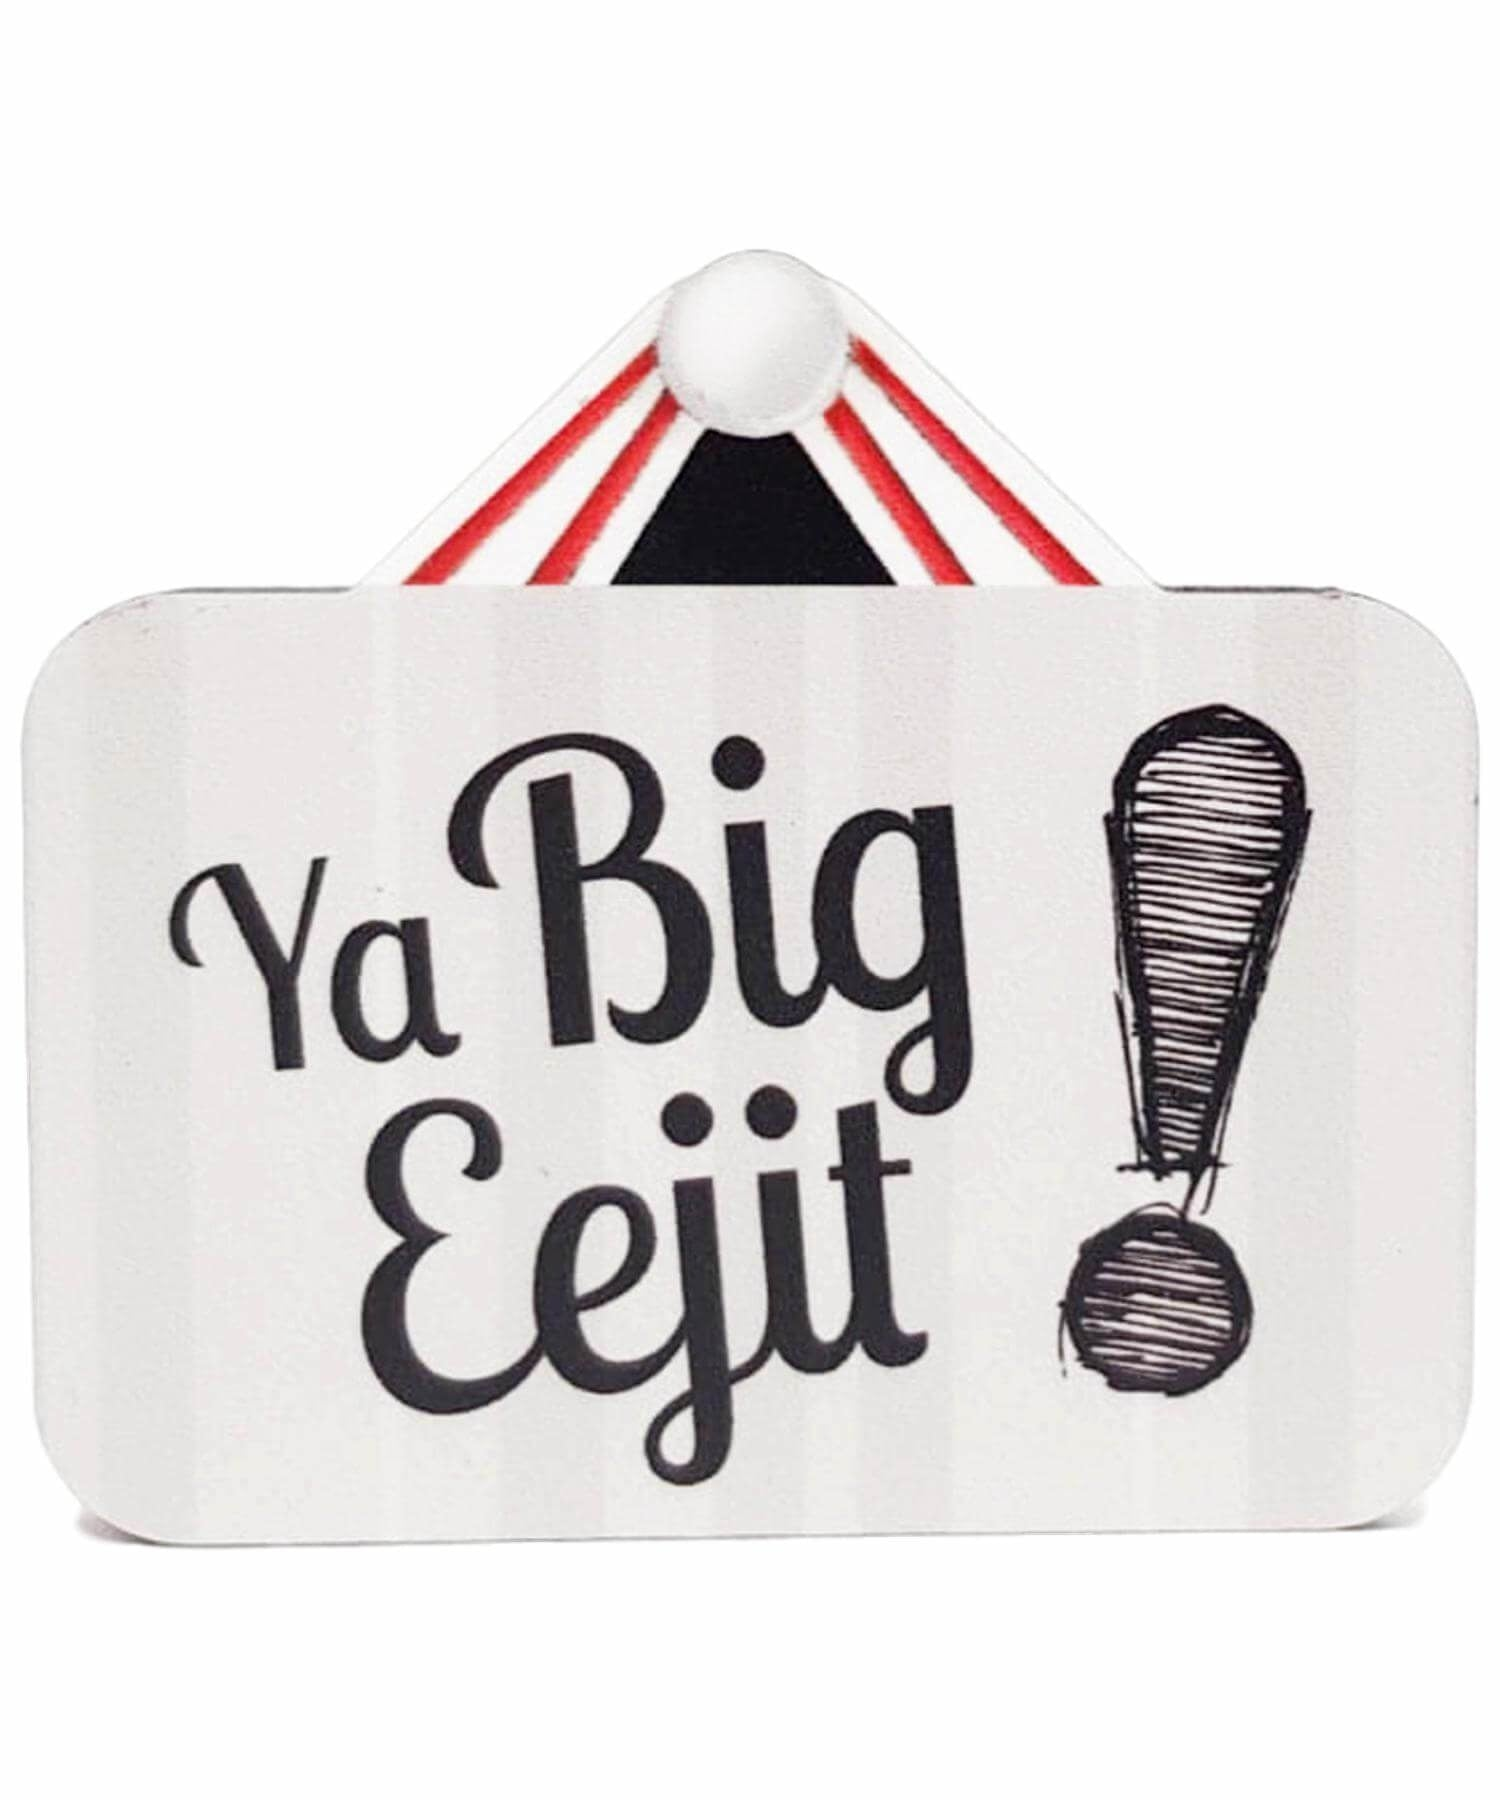 Irish Saying Magnet - Ya Big Eejit Avokado & Co Souvenir